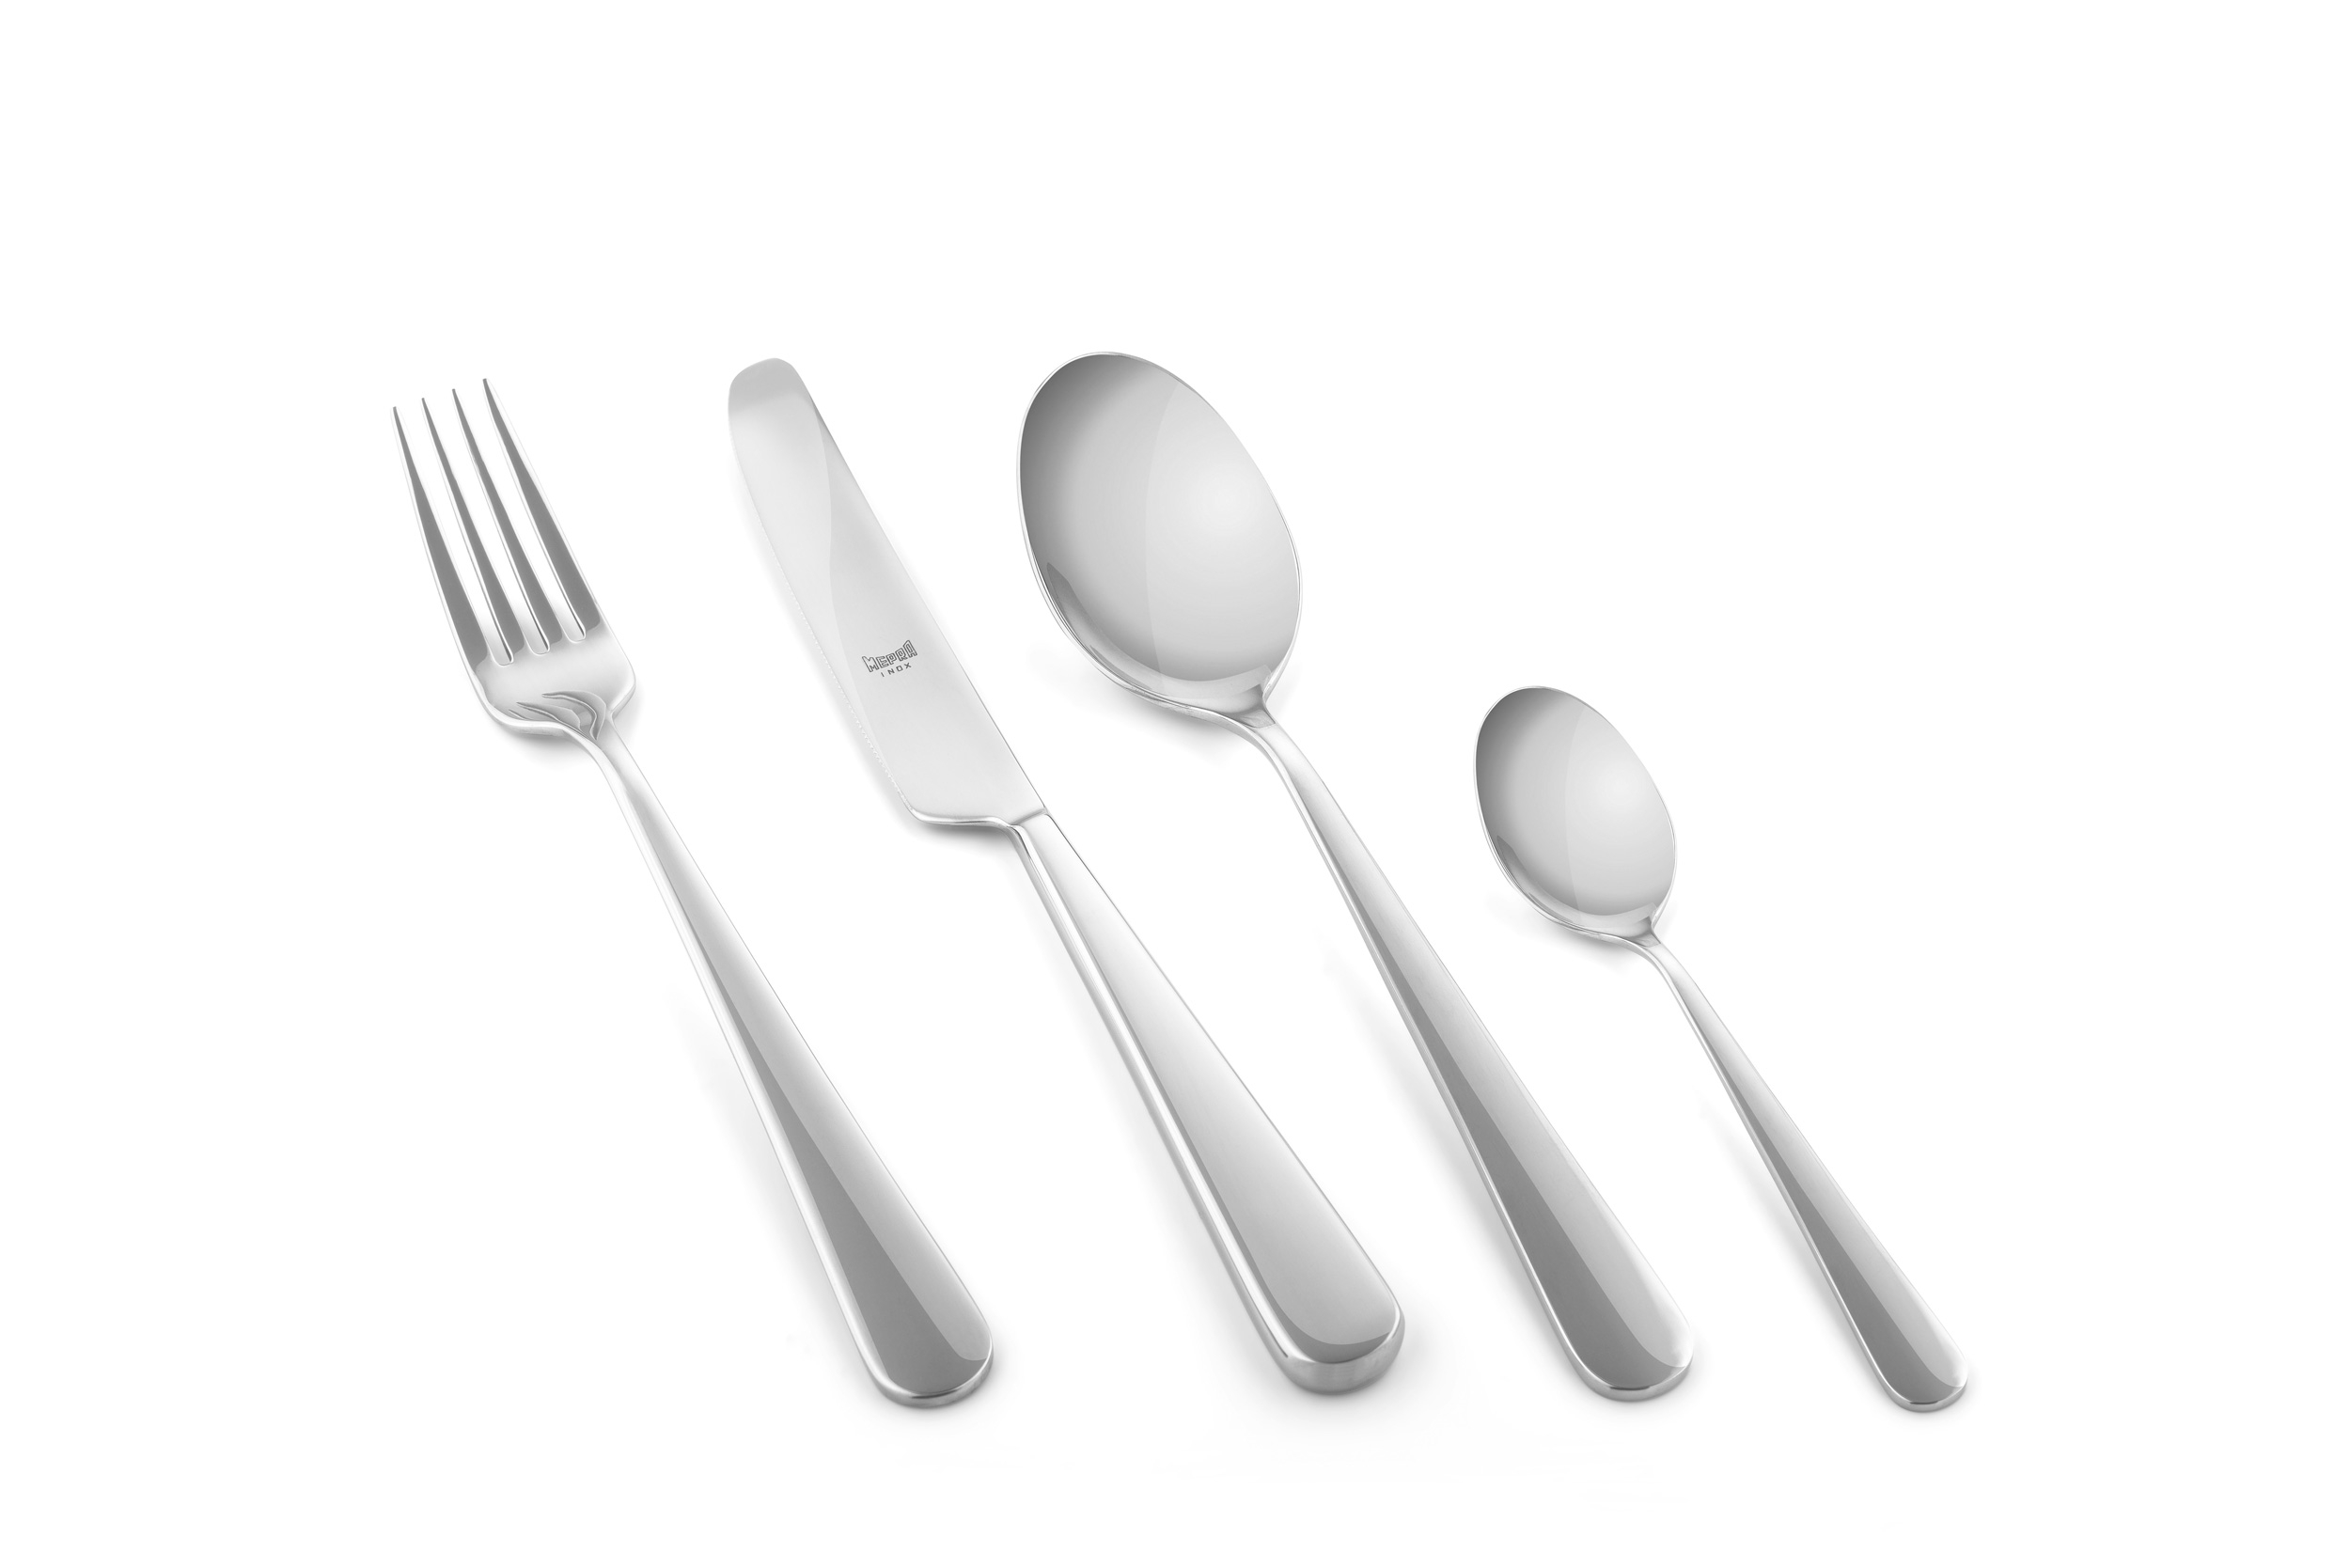 24 pcs set Stoccolma Stainless Steel